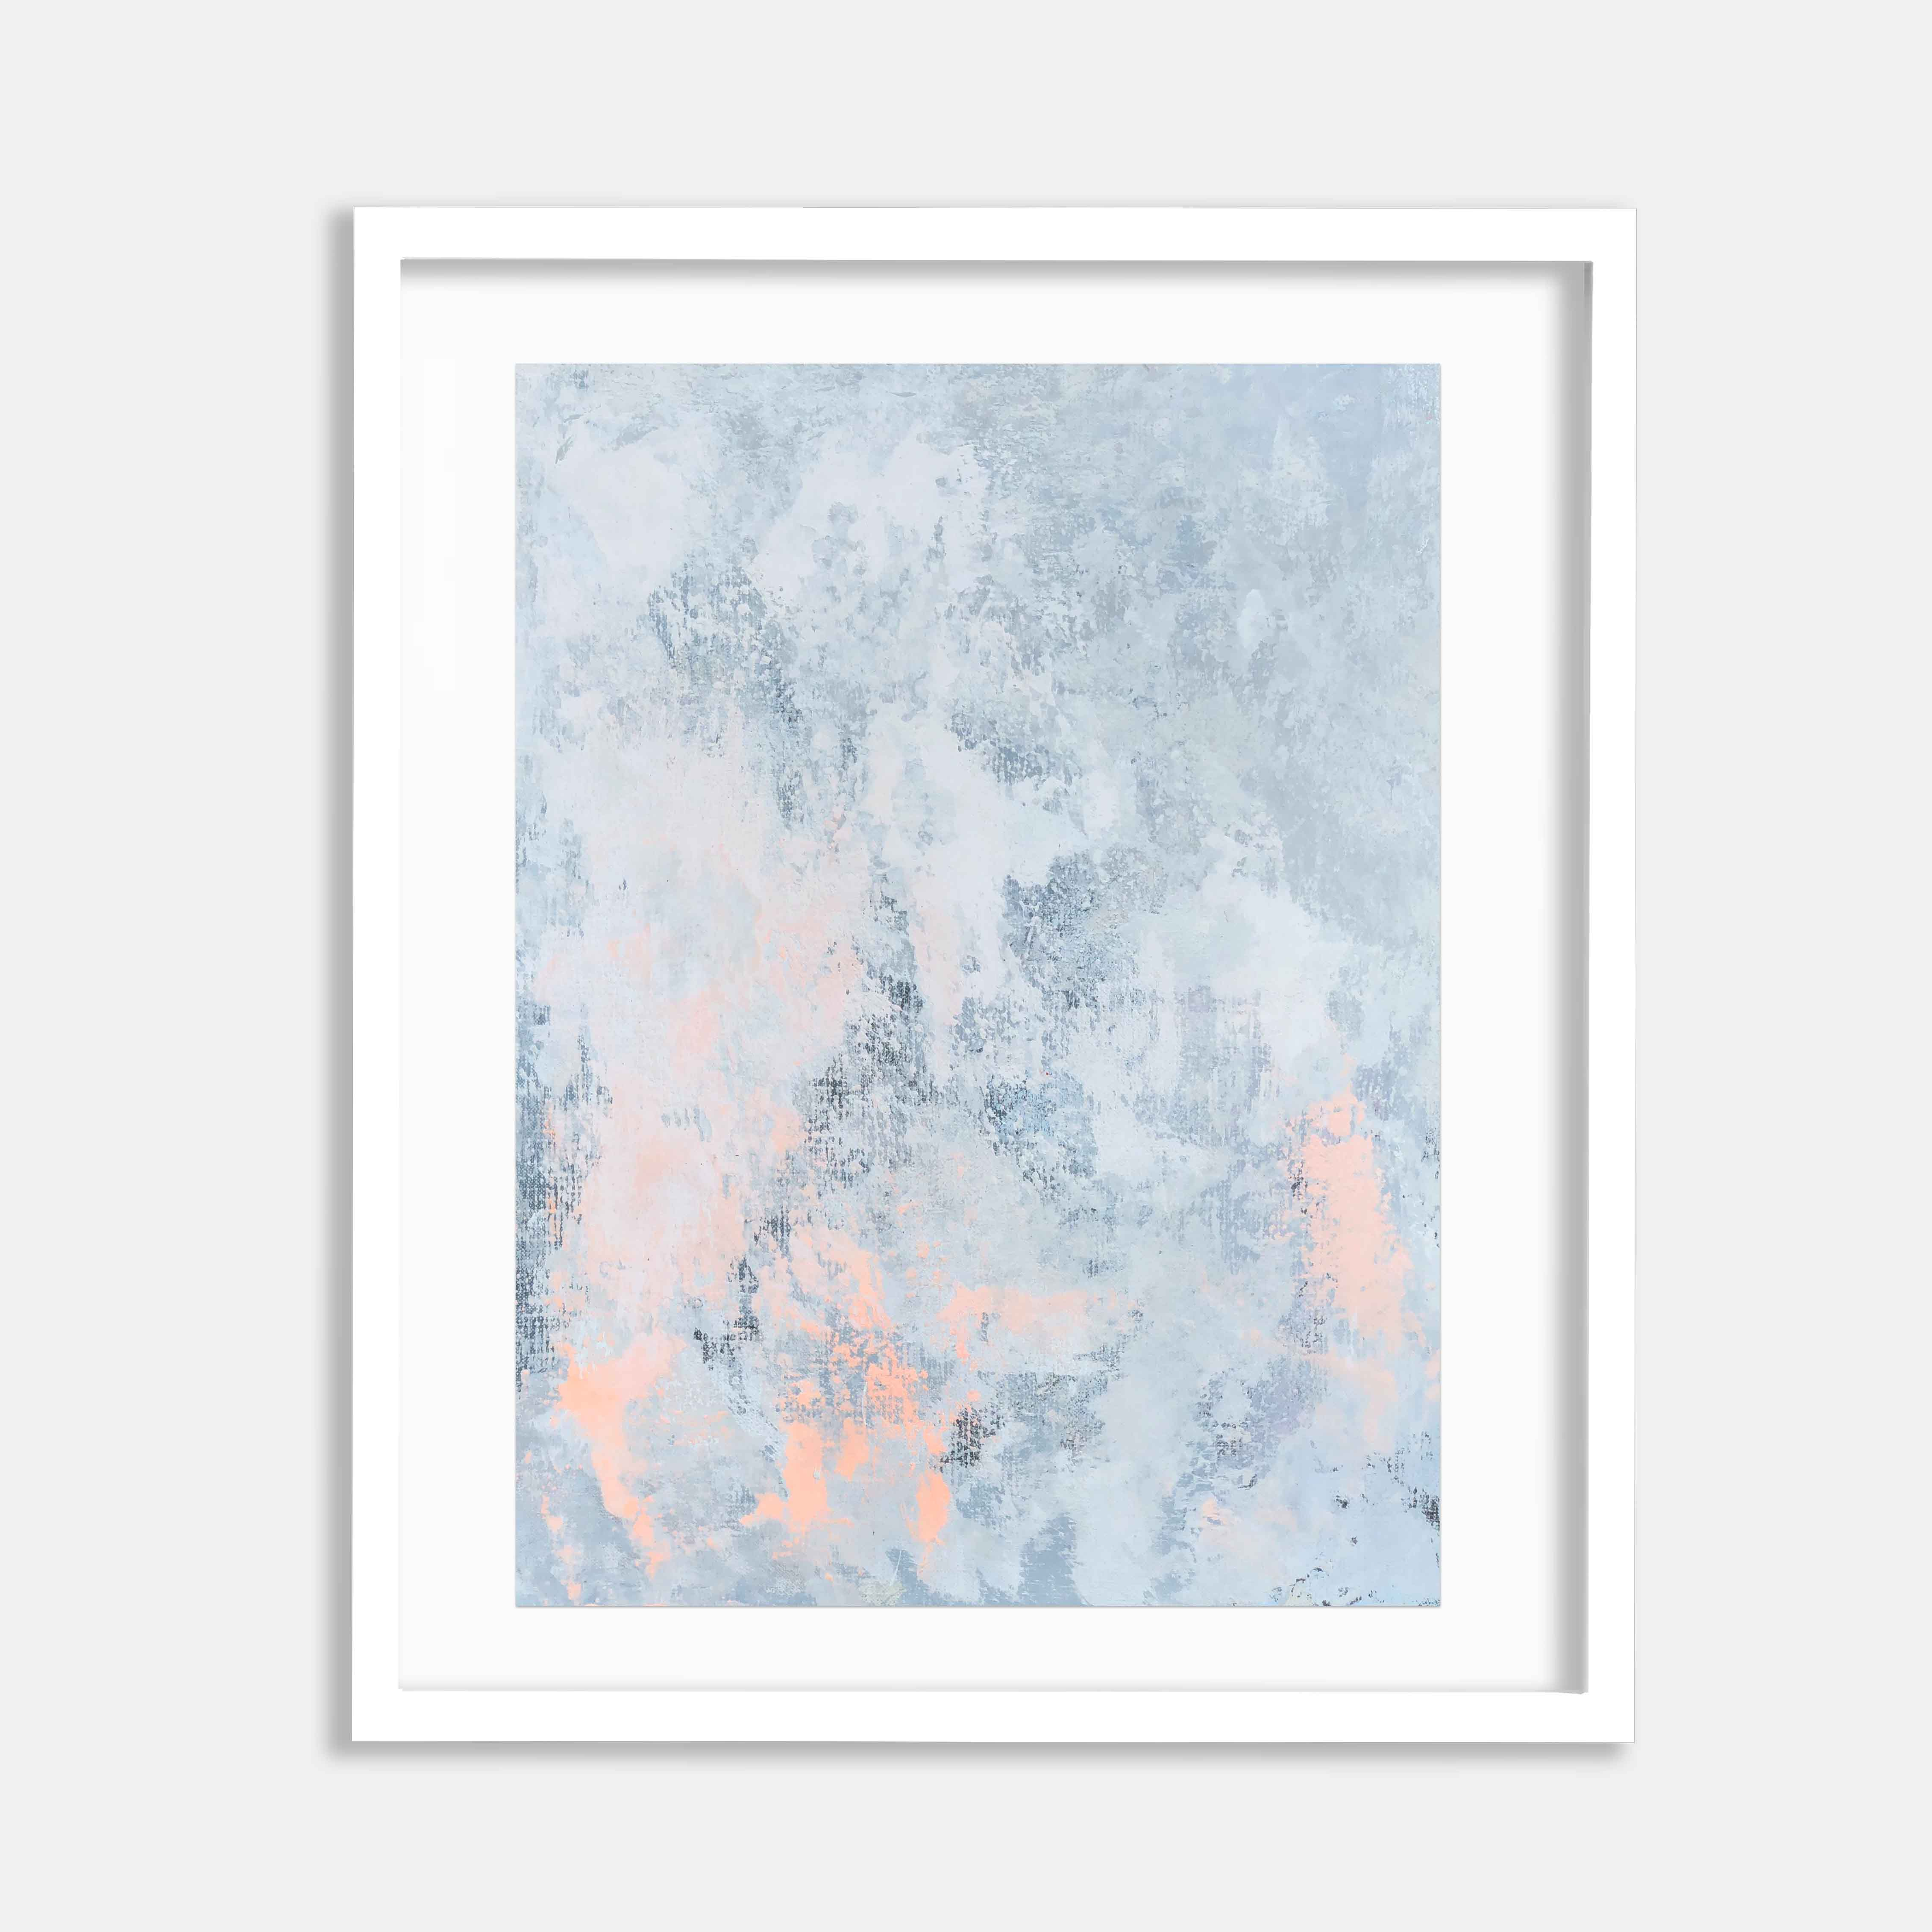 Untitled (White Painting 18-05)